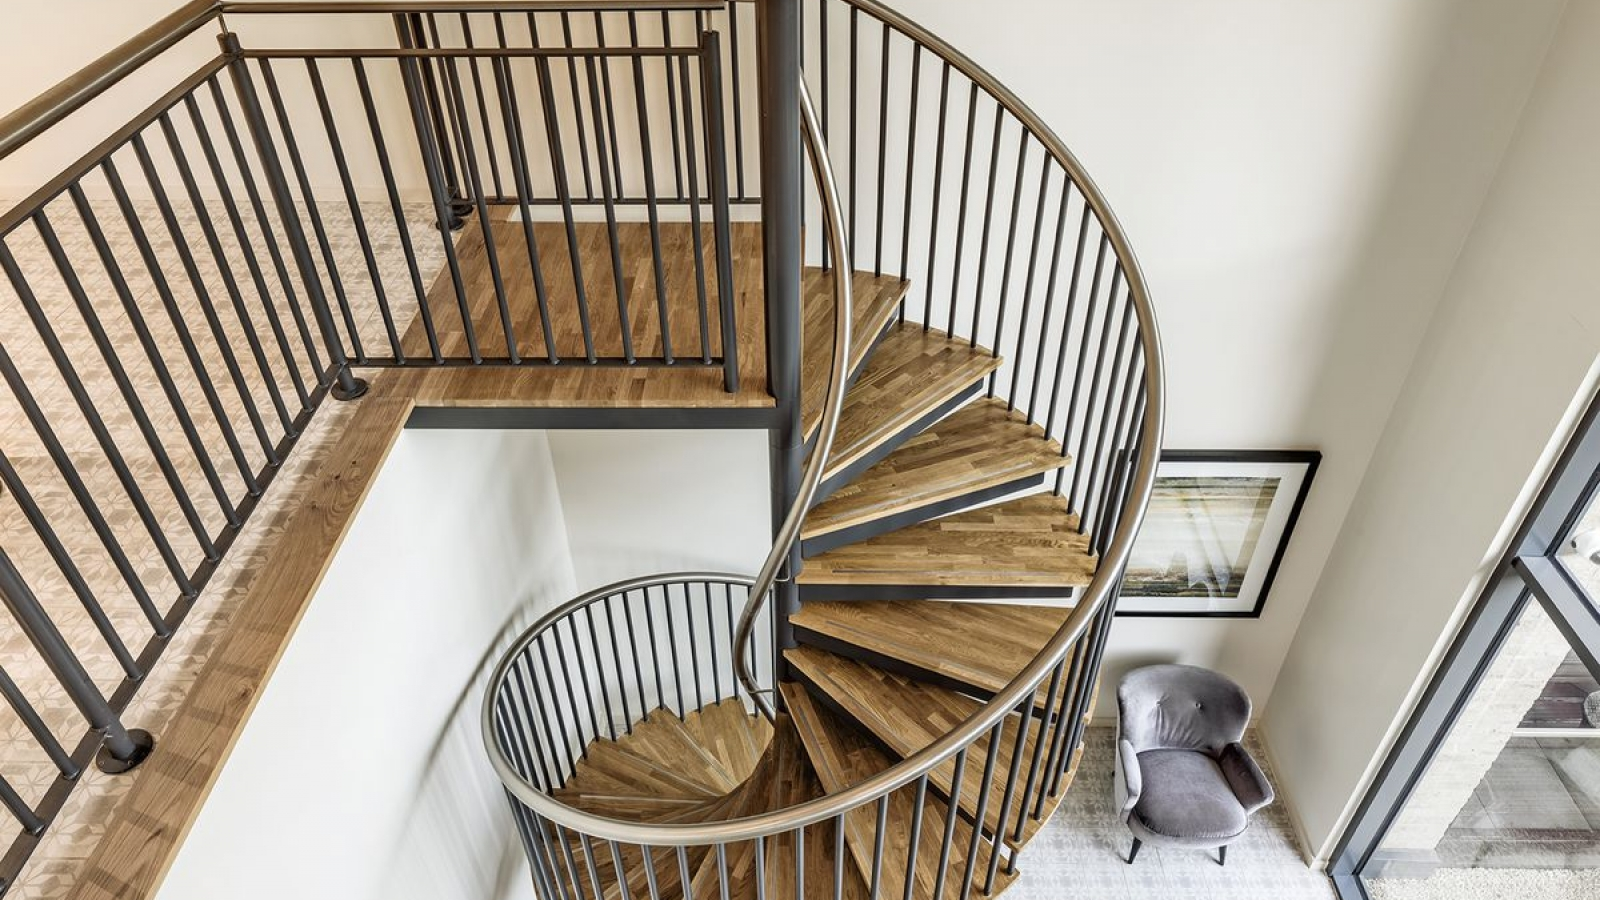 Spiral UK Can Provide A Range Of Shapes Including Straight, Spiral And  Helical. Straight Staircase Designs Are Ideal For More Traditional  Aesthetics With ...